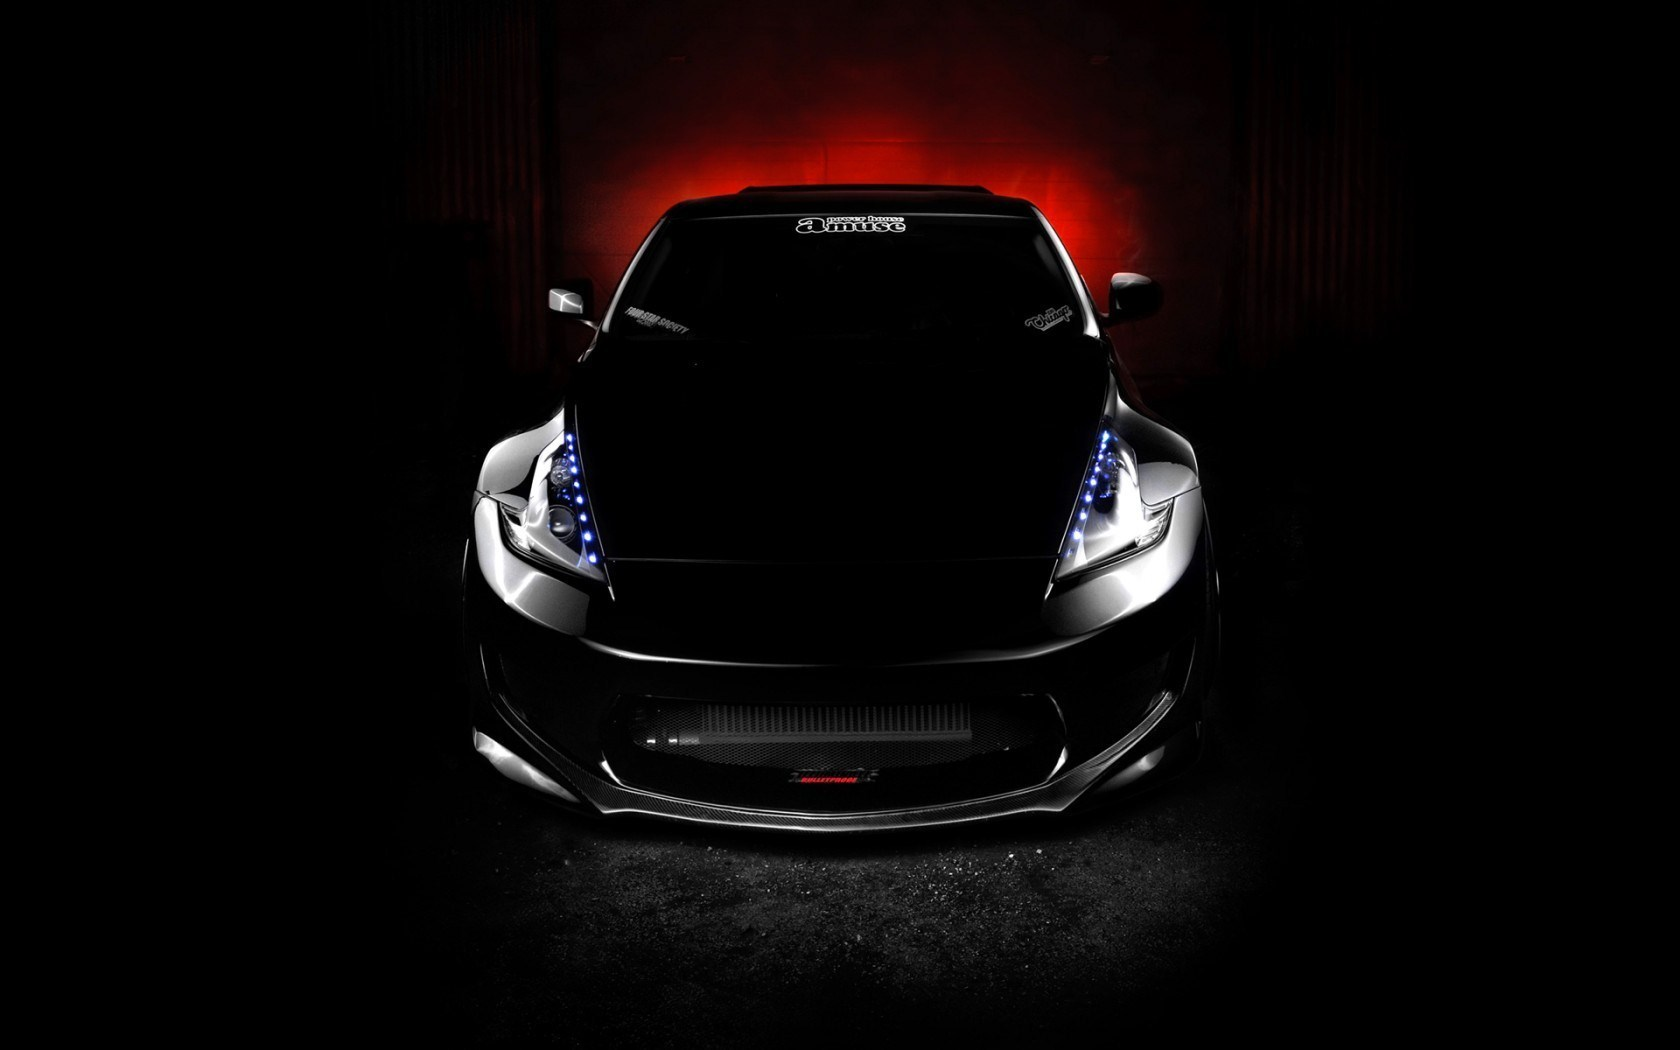 nissan 370z wallpaper for iphone 6